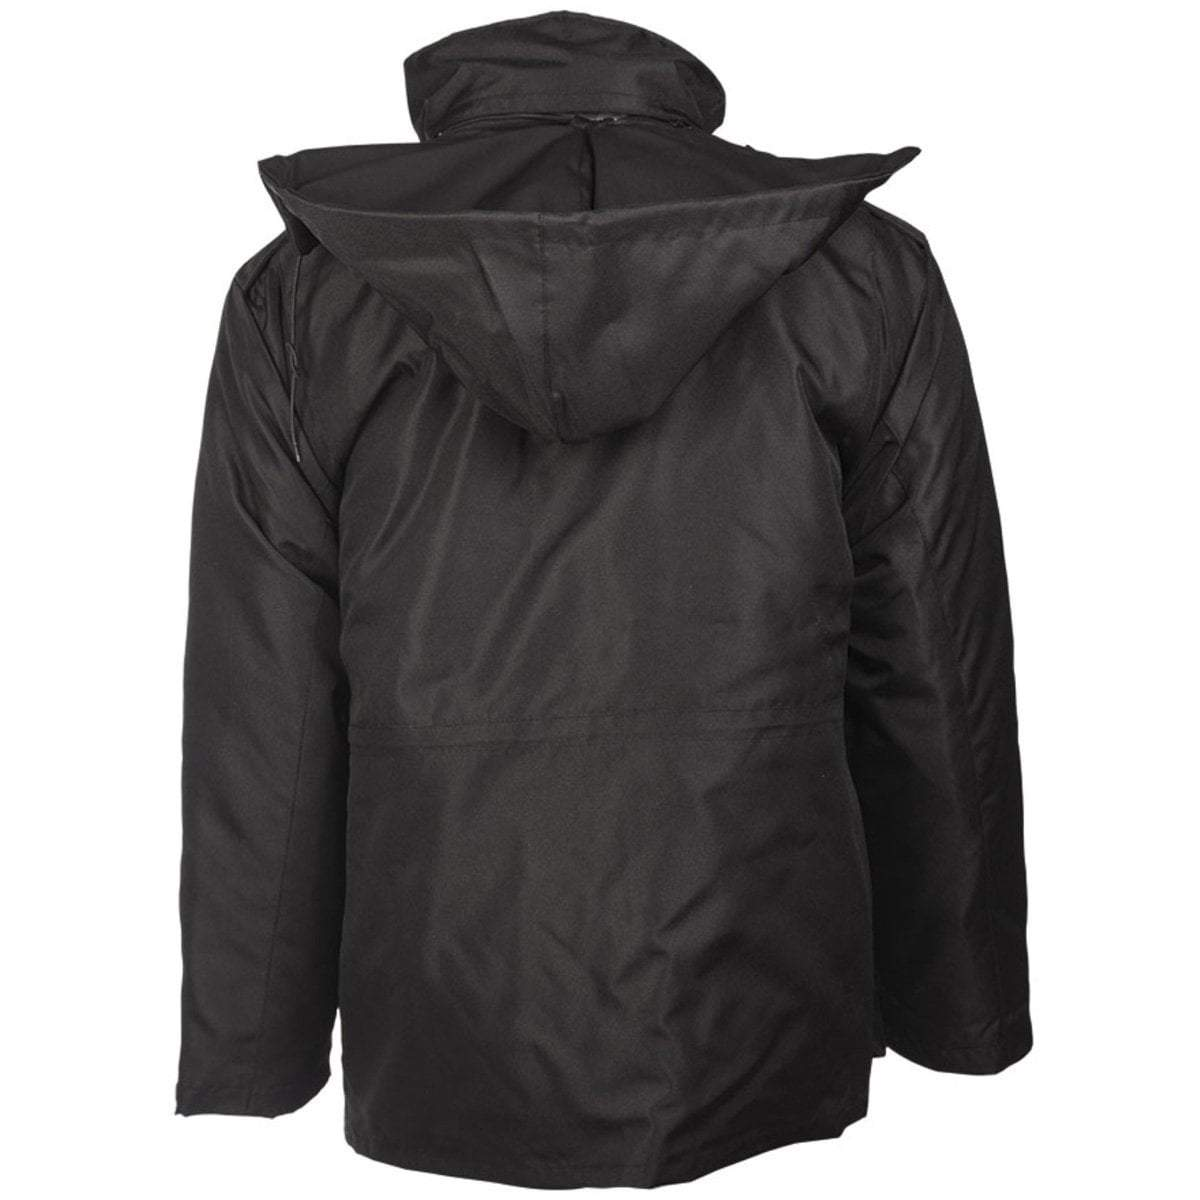 Mil-Tec Black Security Intervention Jacket | UKMCPro